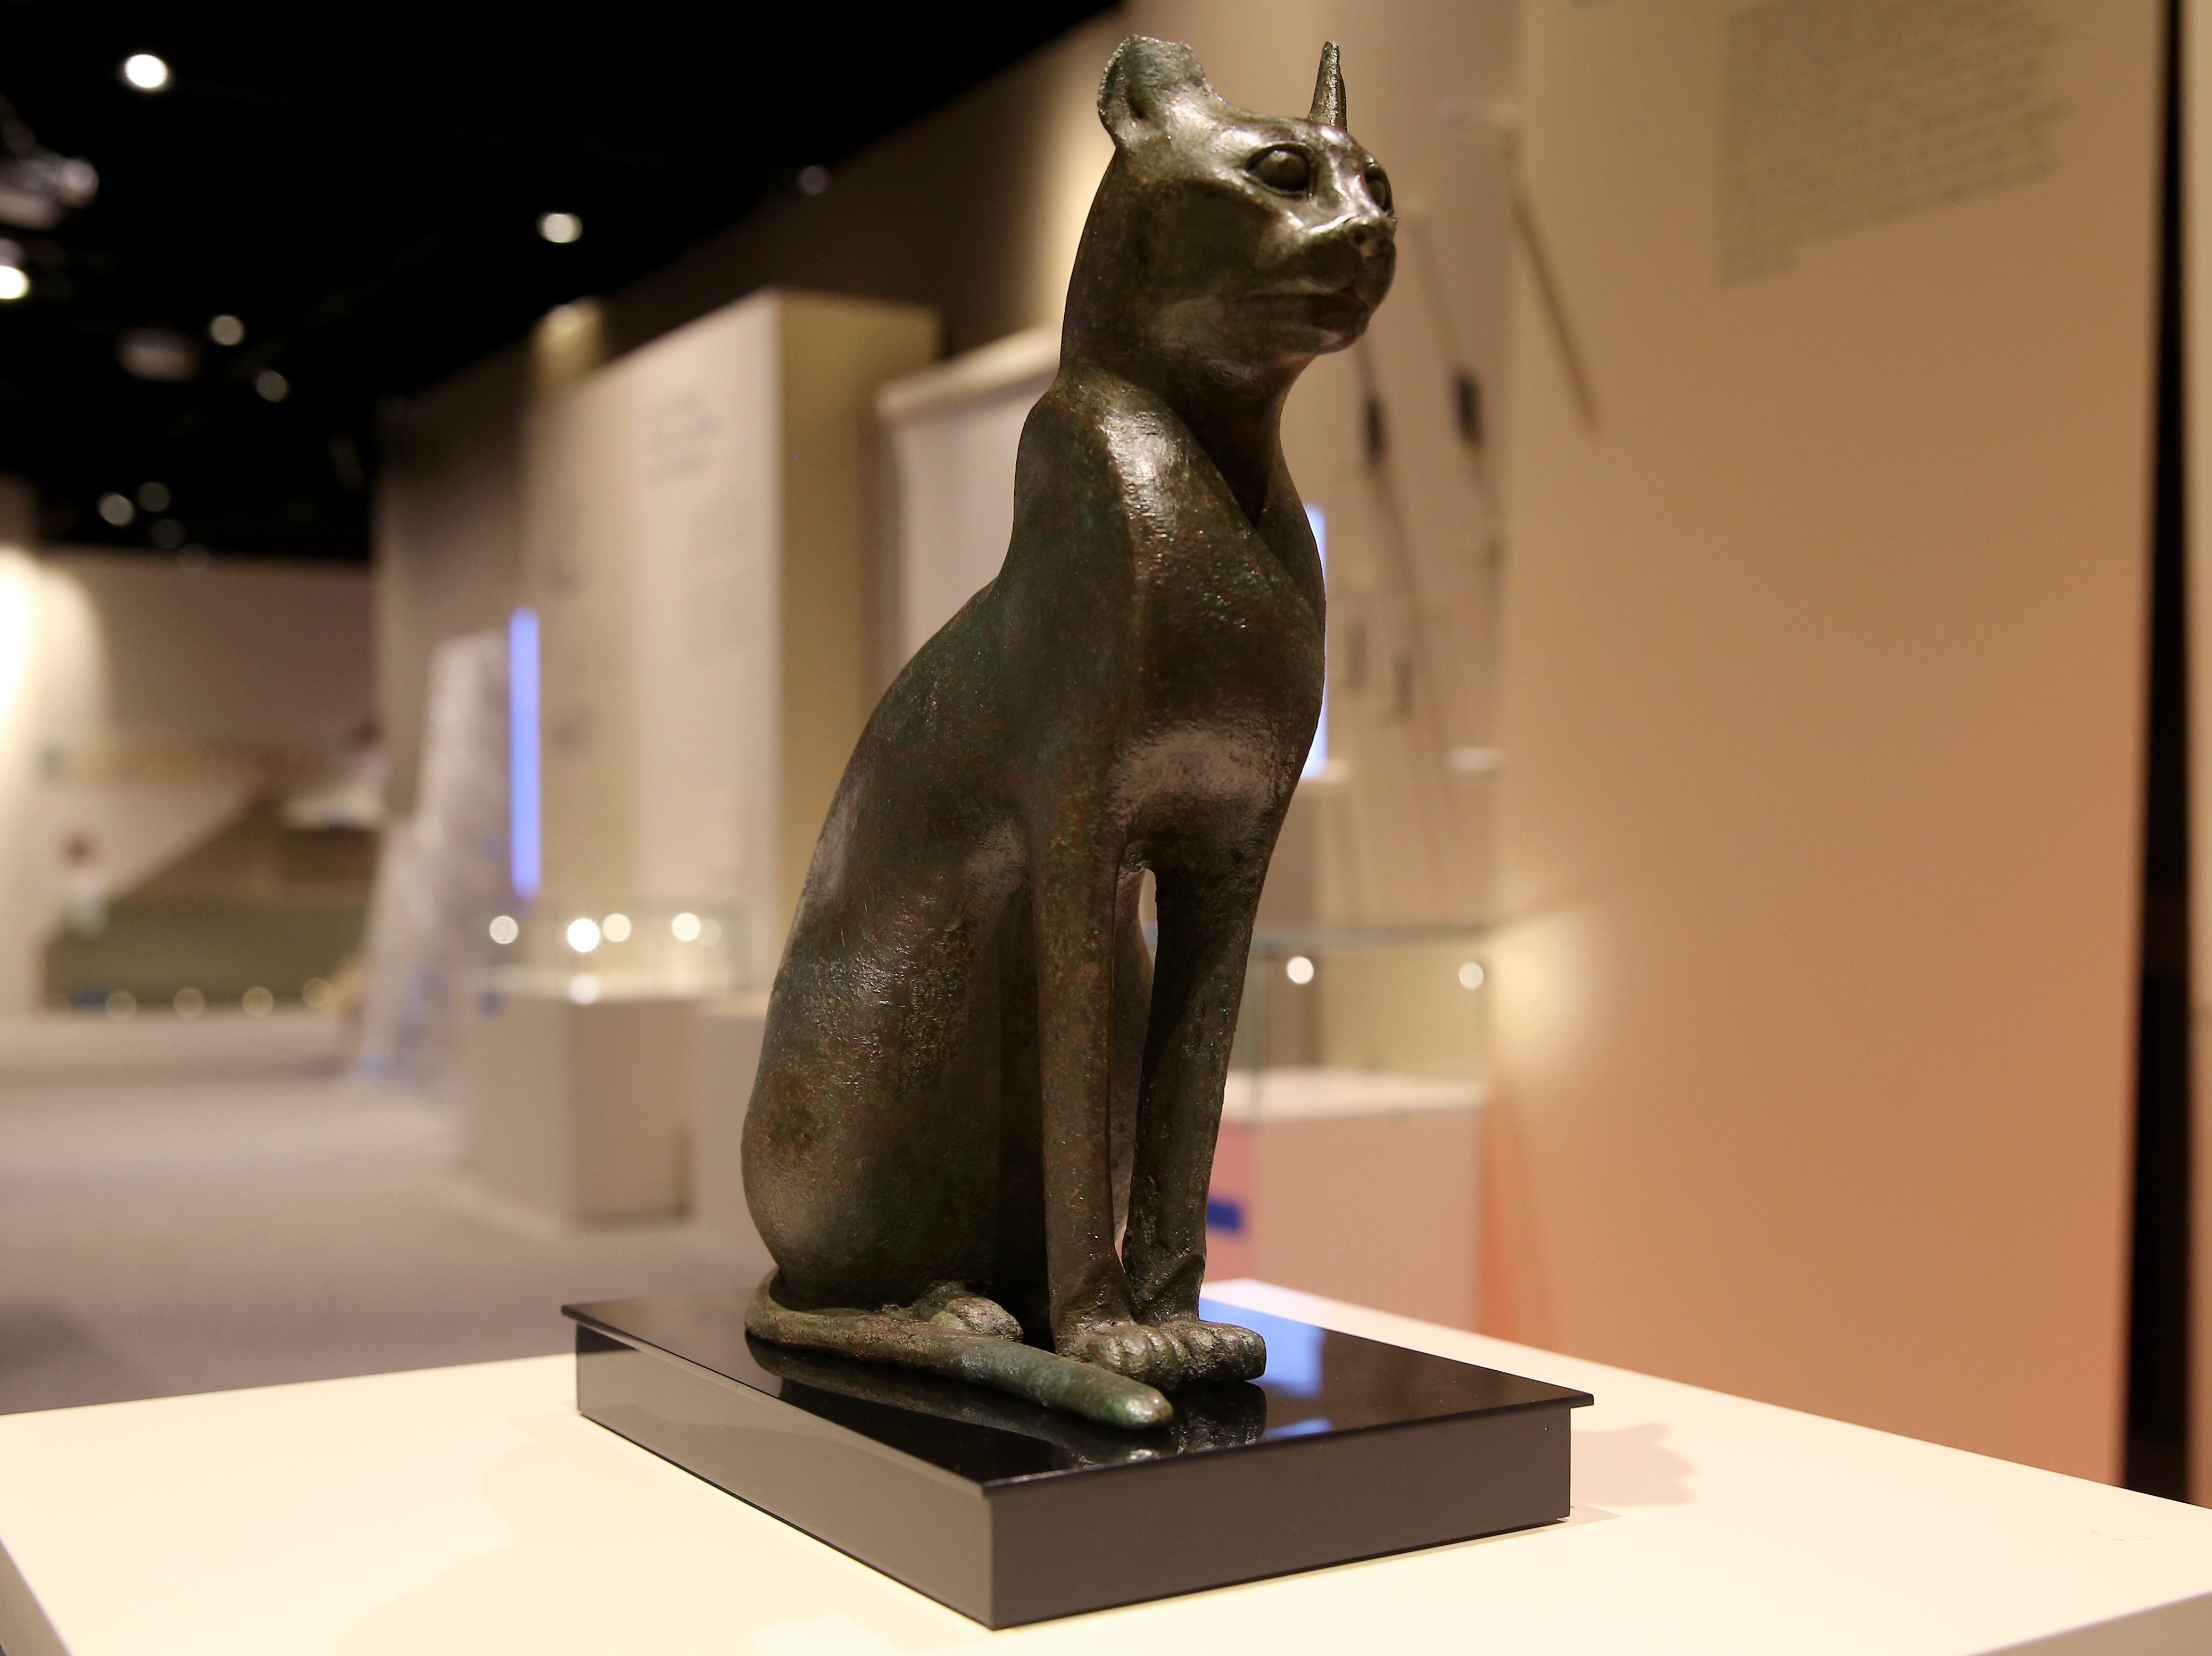 A bronze cat, often buried as a sacred objects in tombs, is uncrated for display, Thursday, Feb. 7, 2019, at Cincinnati Museum Center in Cincinnati. It is about 2,500 years old.